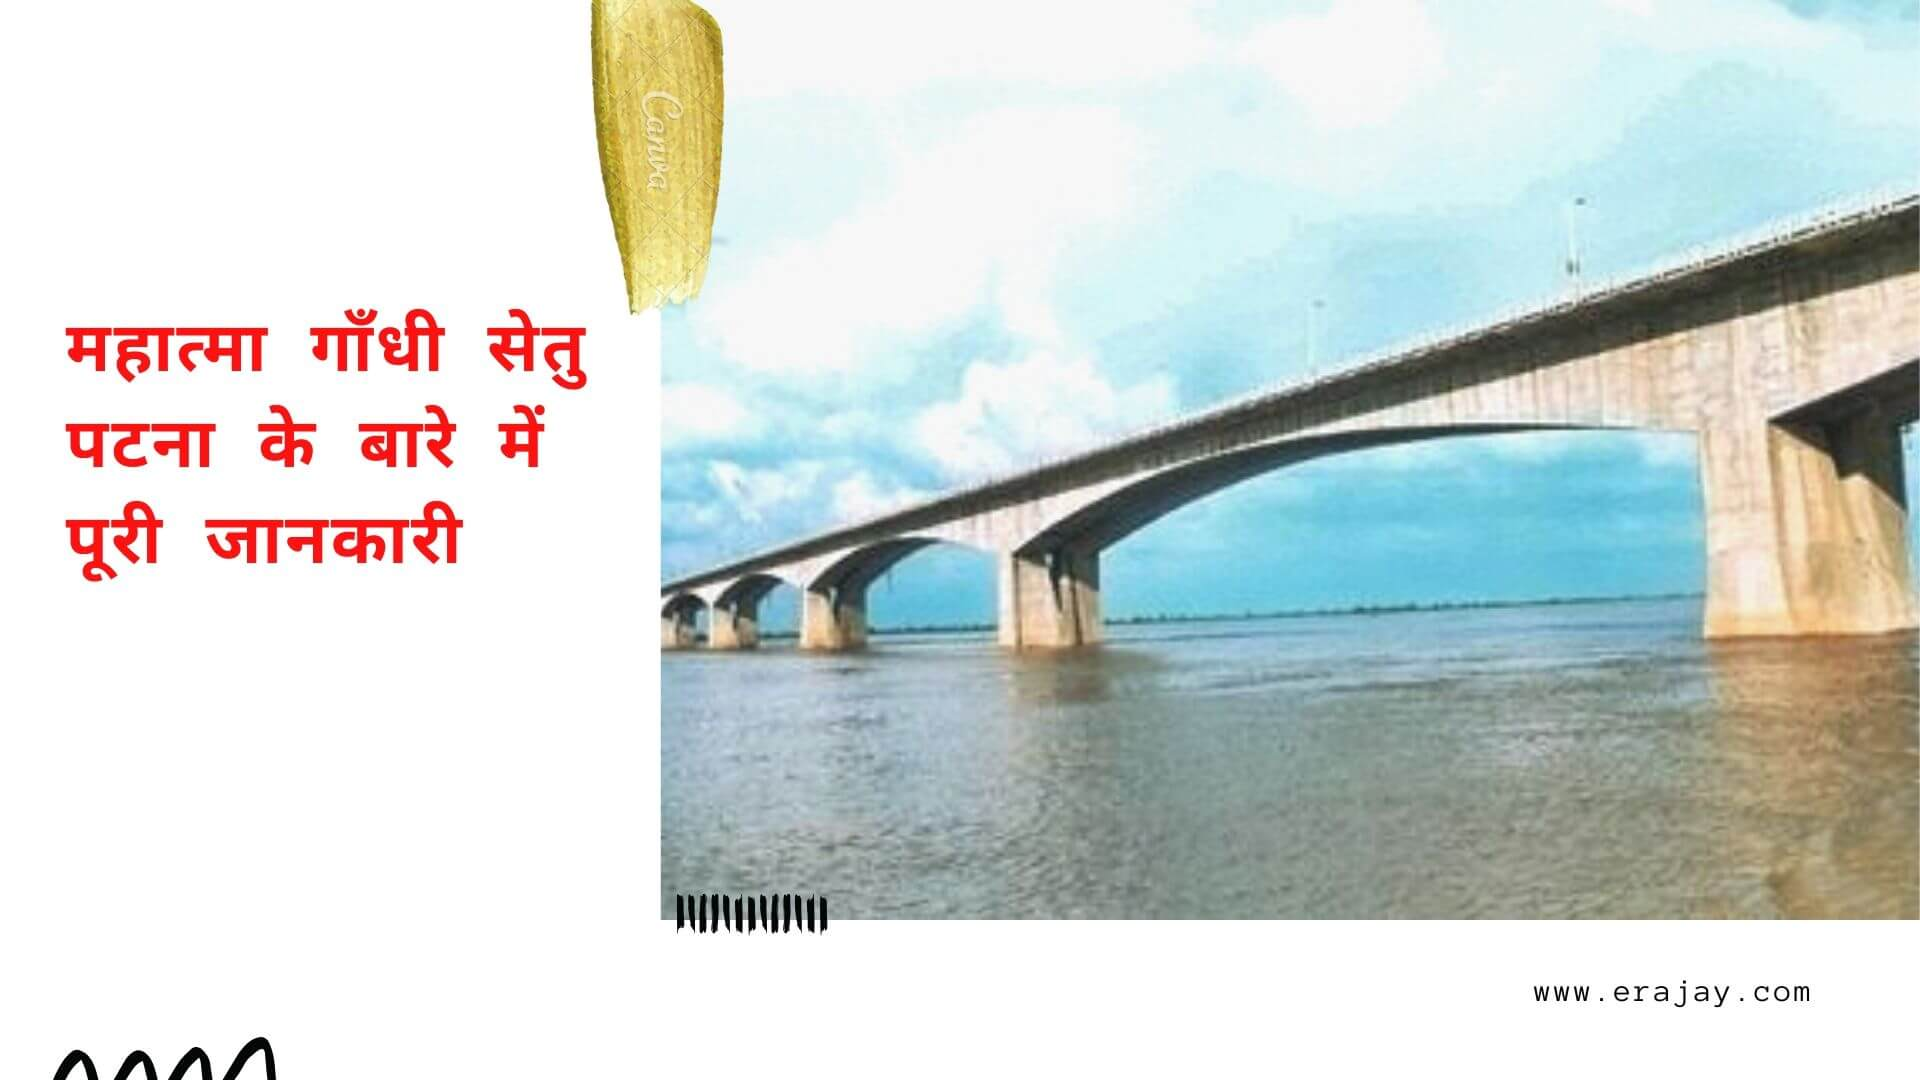 Mahatma gandhi setu full detail in hindi